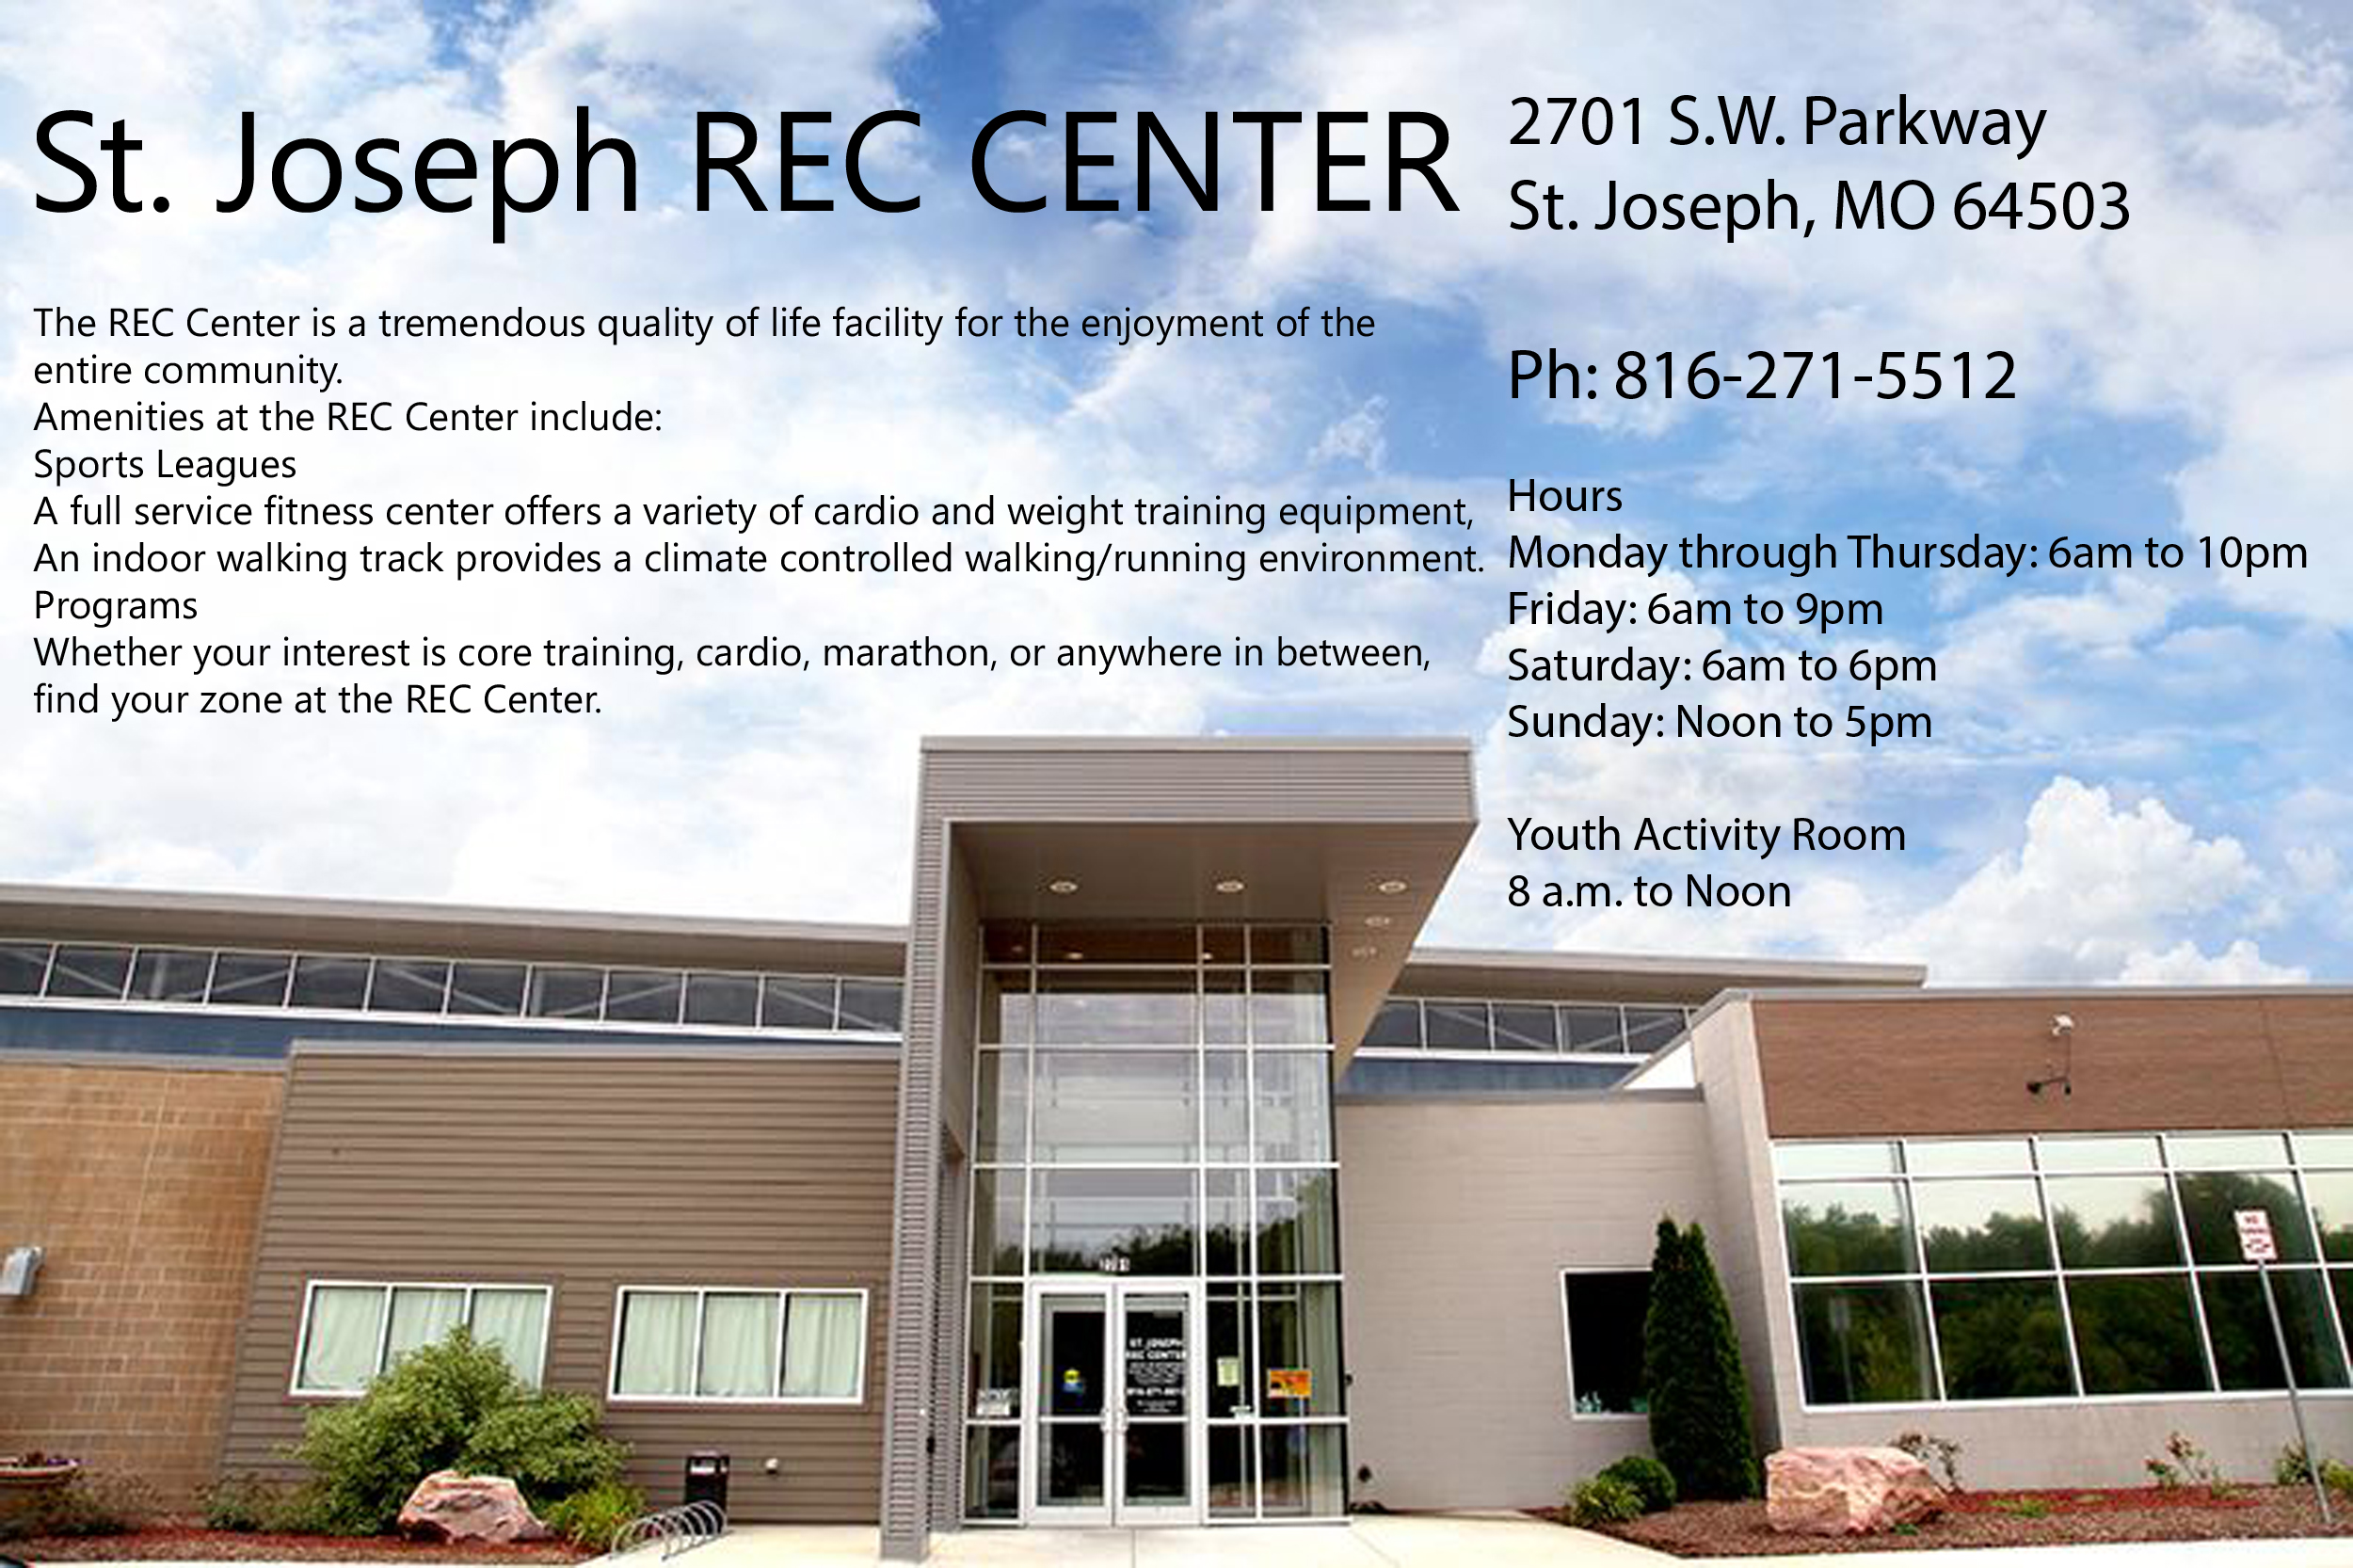 St Joseph REC Center photo and info